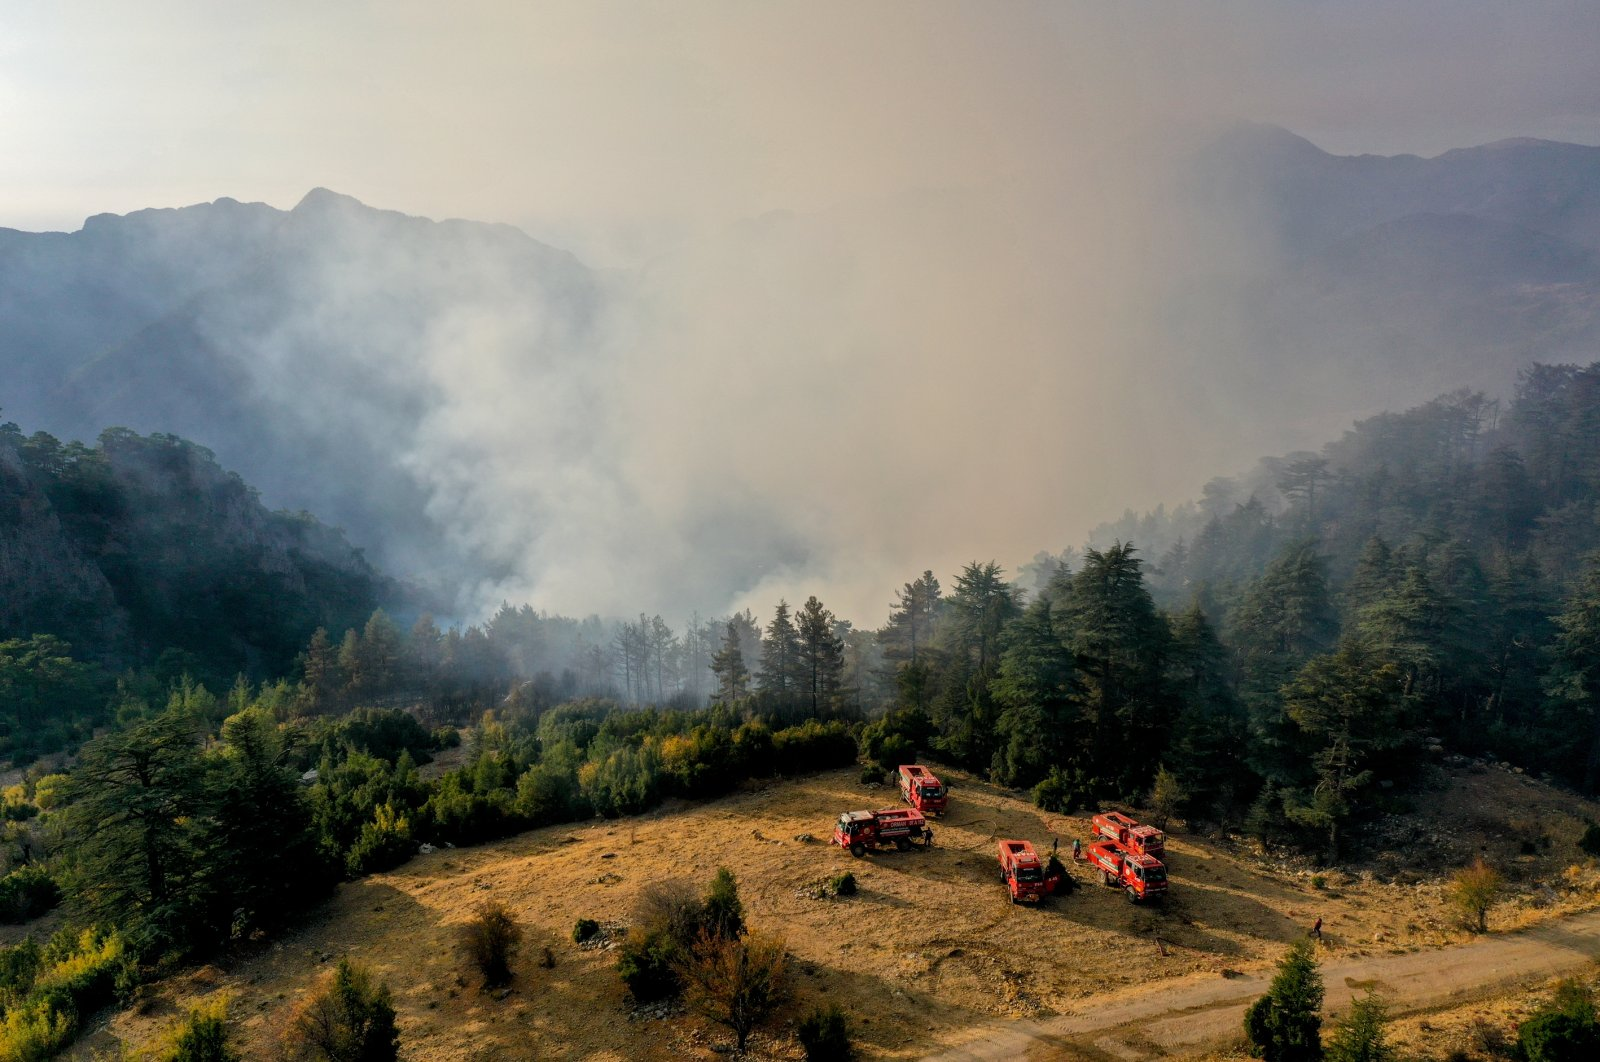 Fire crews continue efforts to put out a wildfire in Kemer district of Antalya, Turkey, Oct. 13, 2021. (AA Photo)